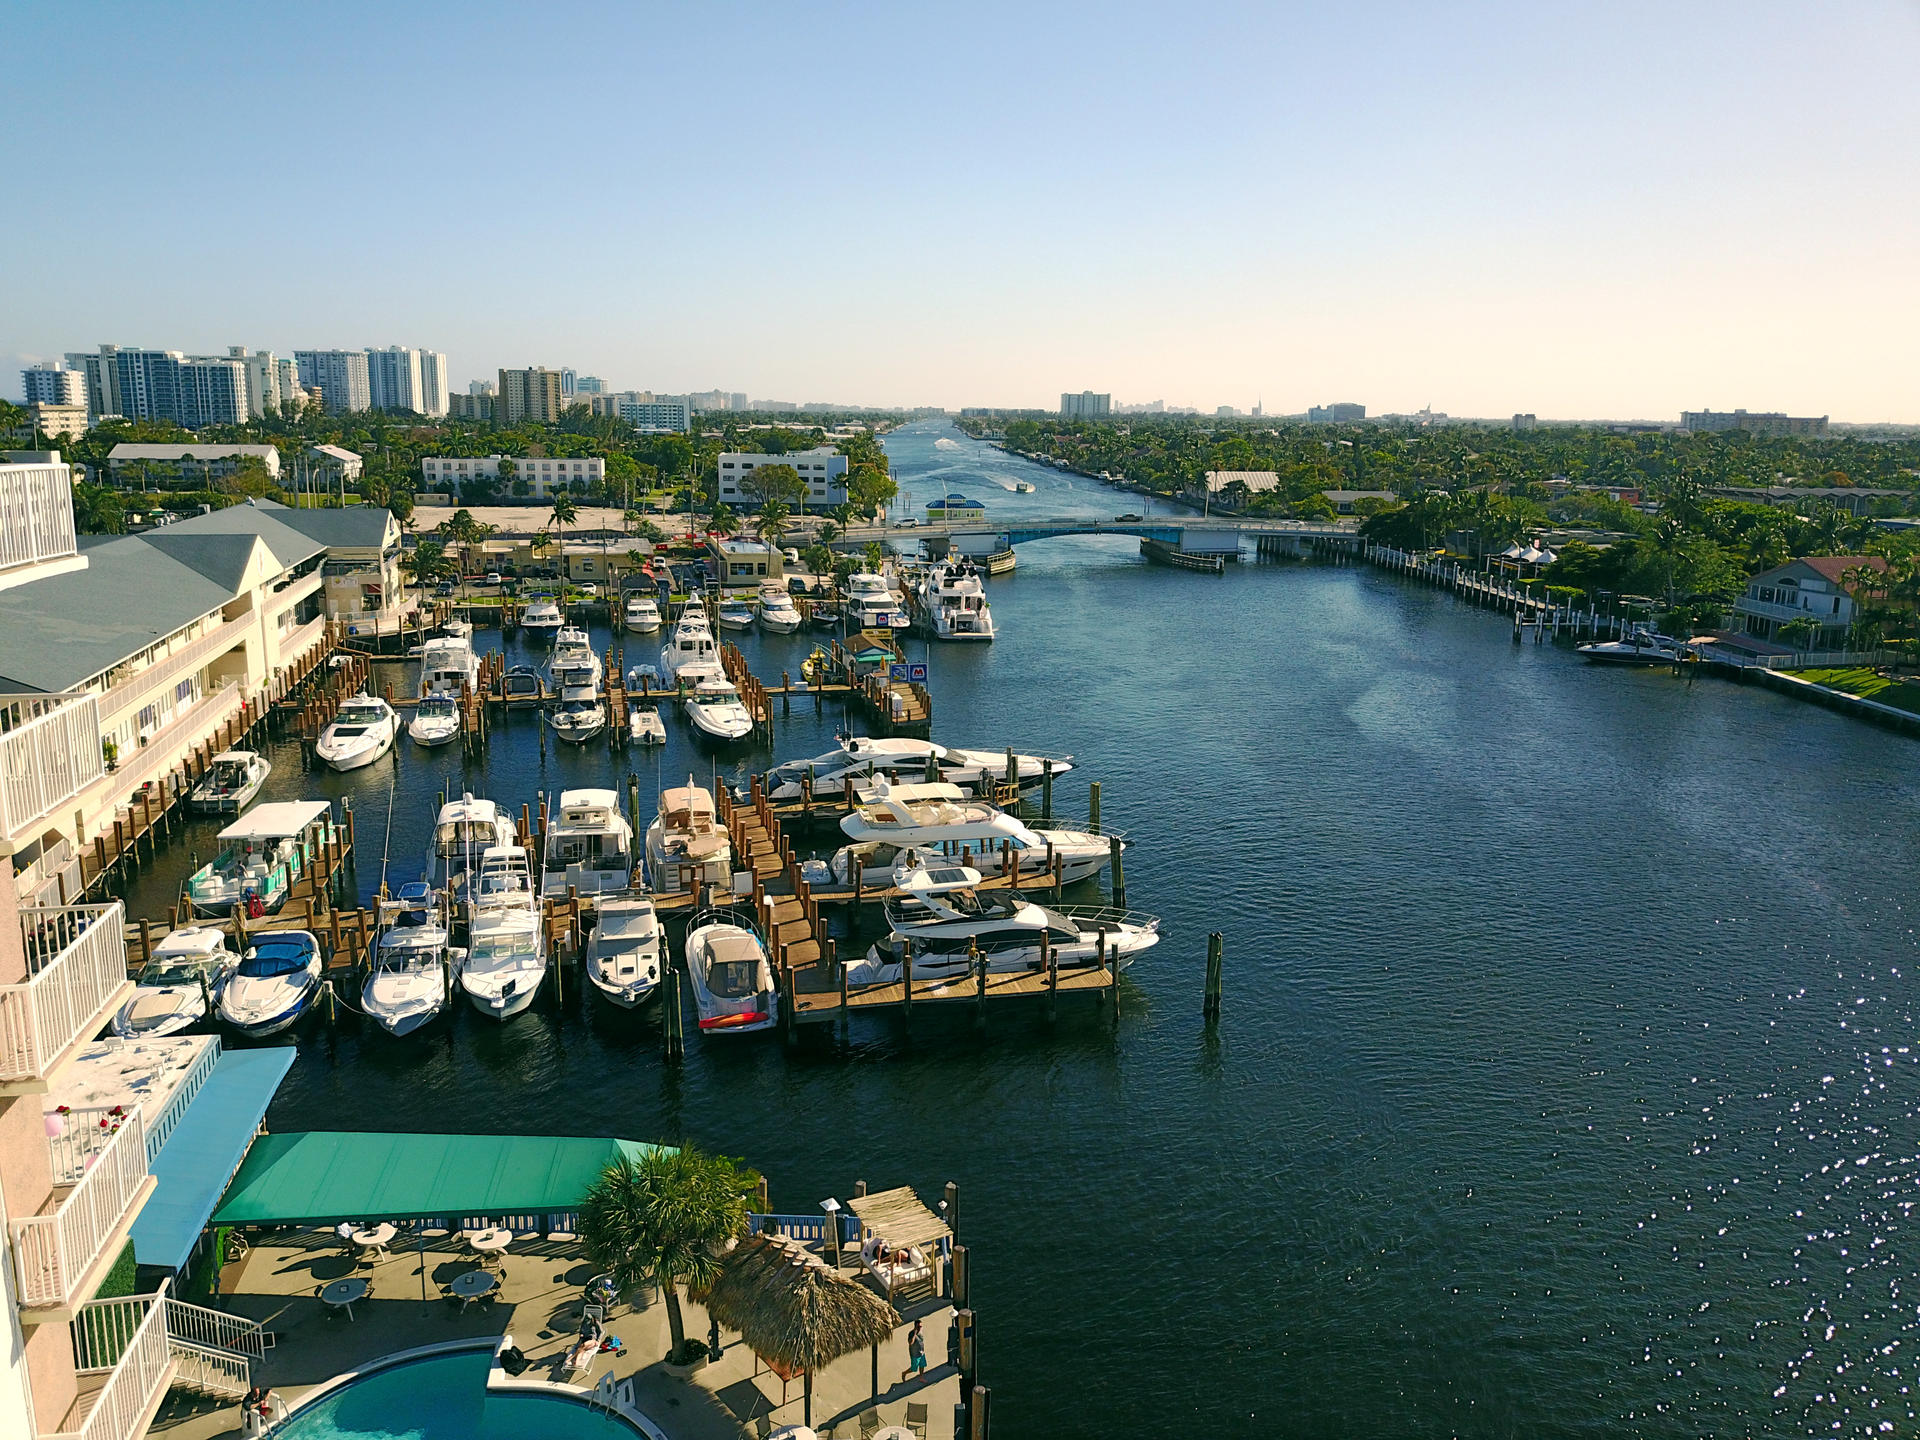 Marina view from above